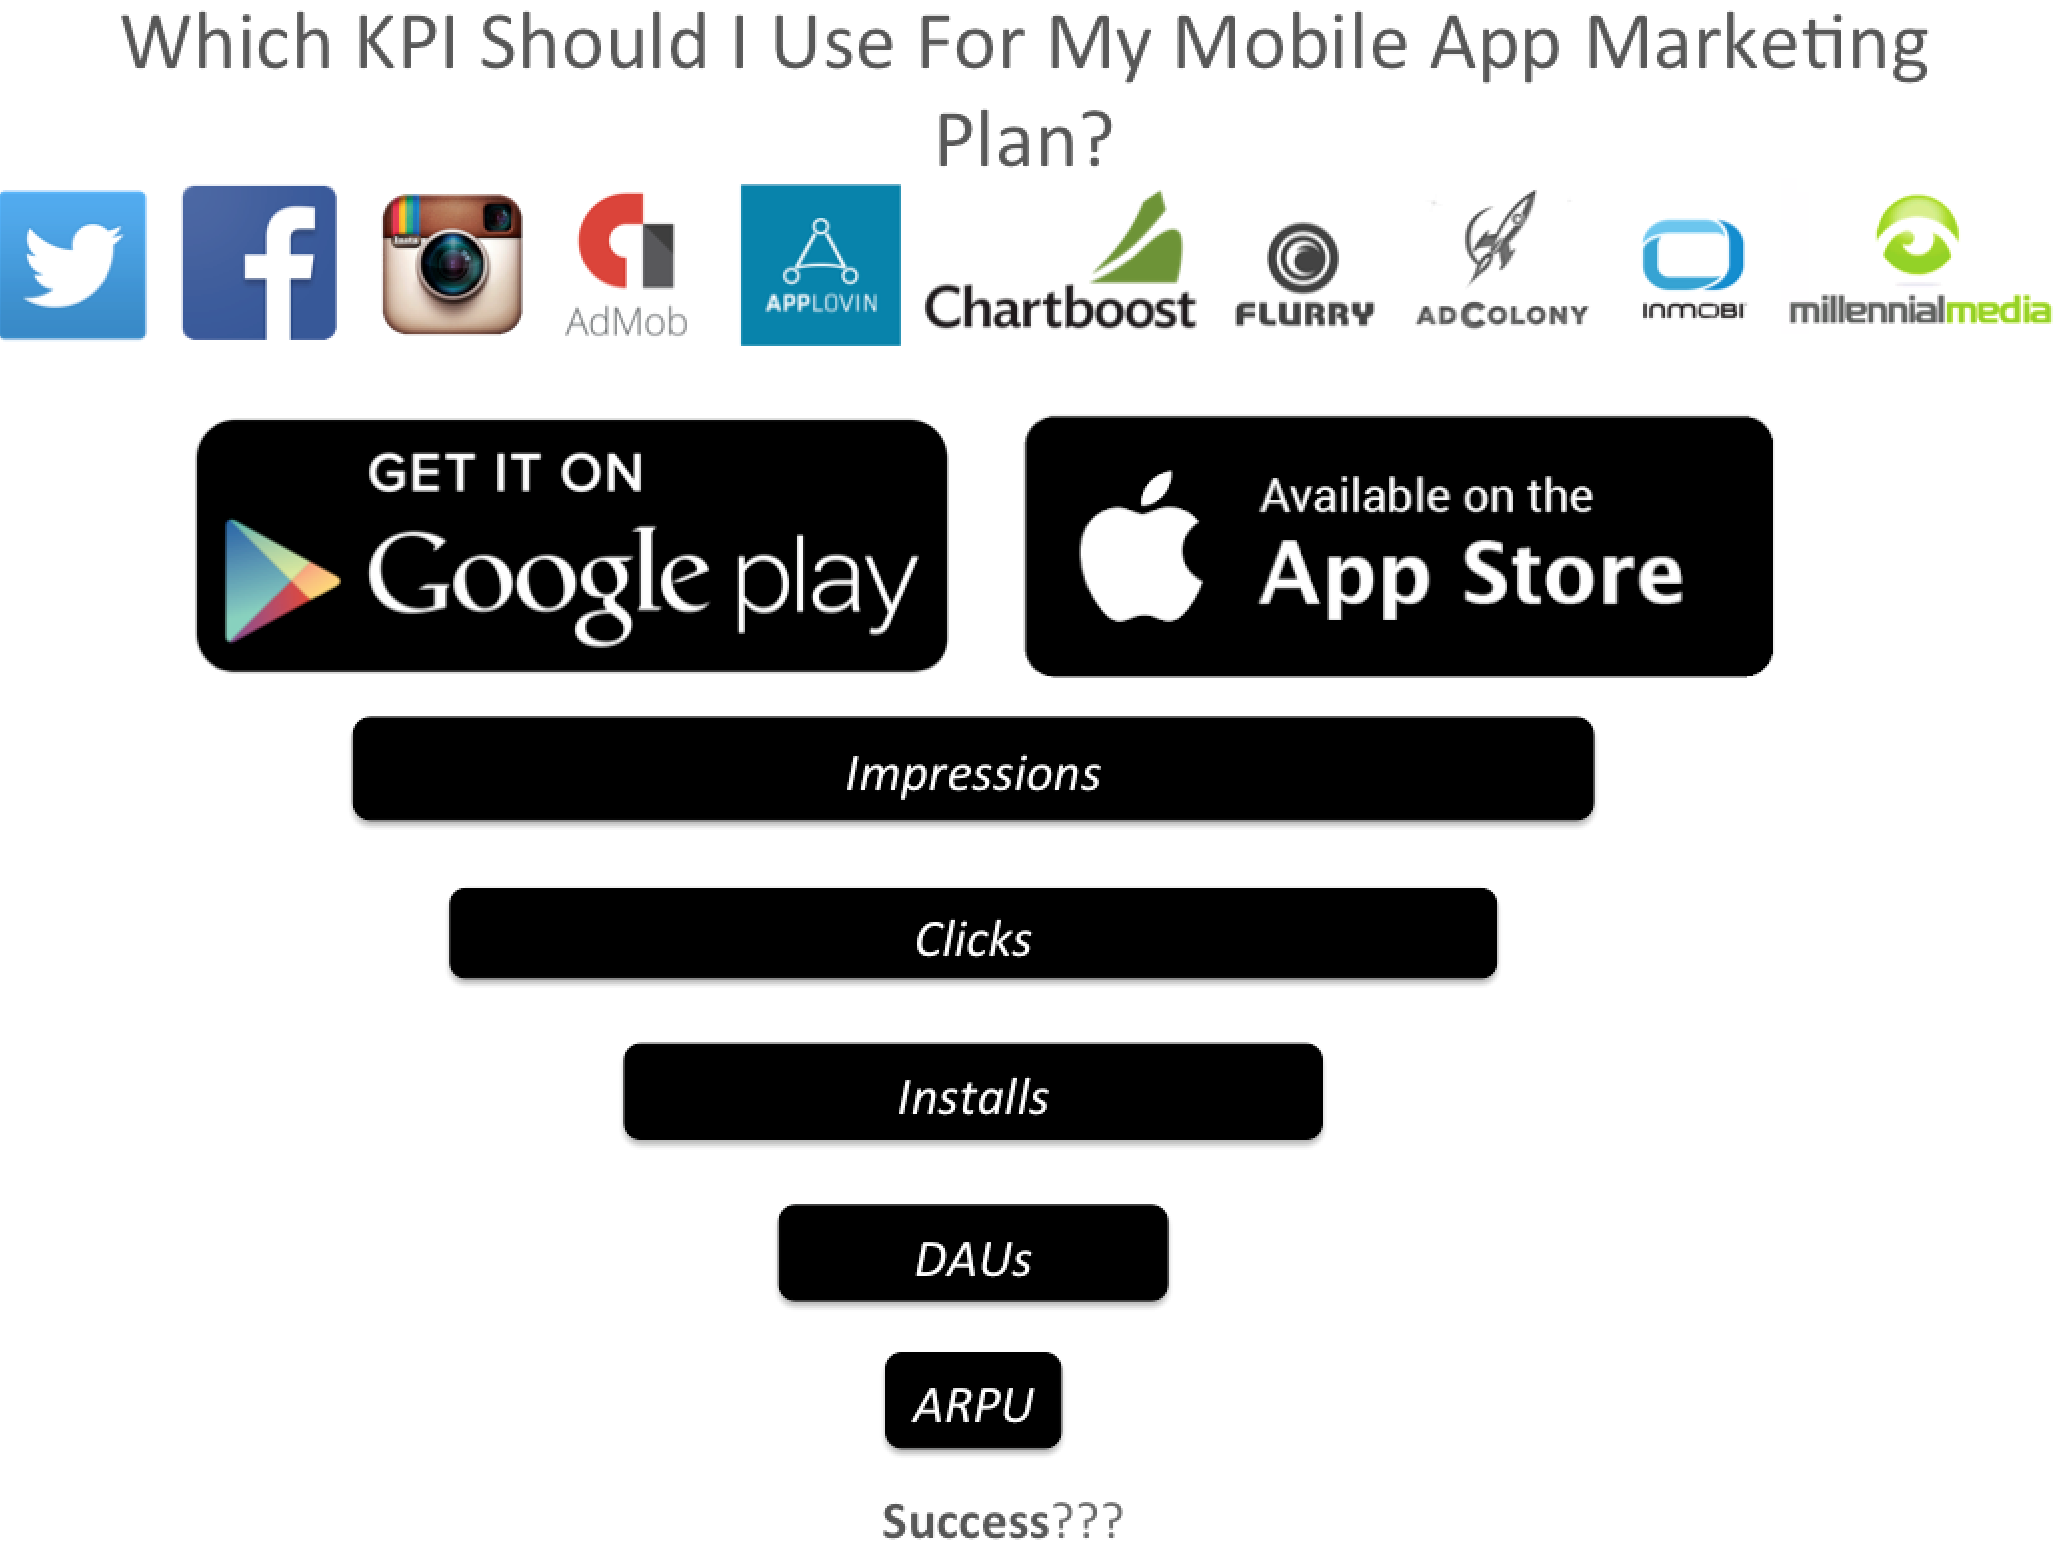 Mobile-App-Marketing-Plan-KPIs